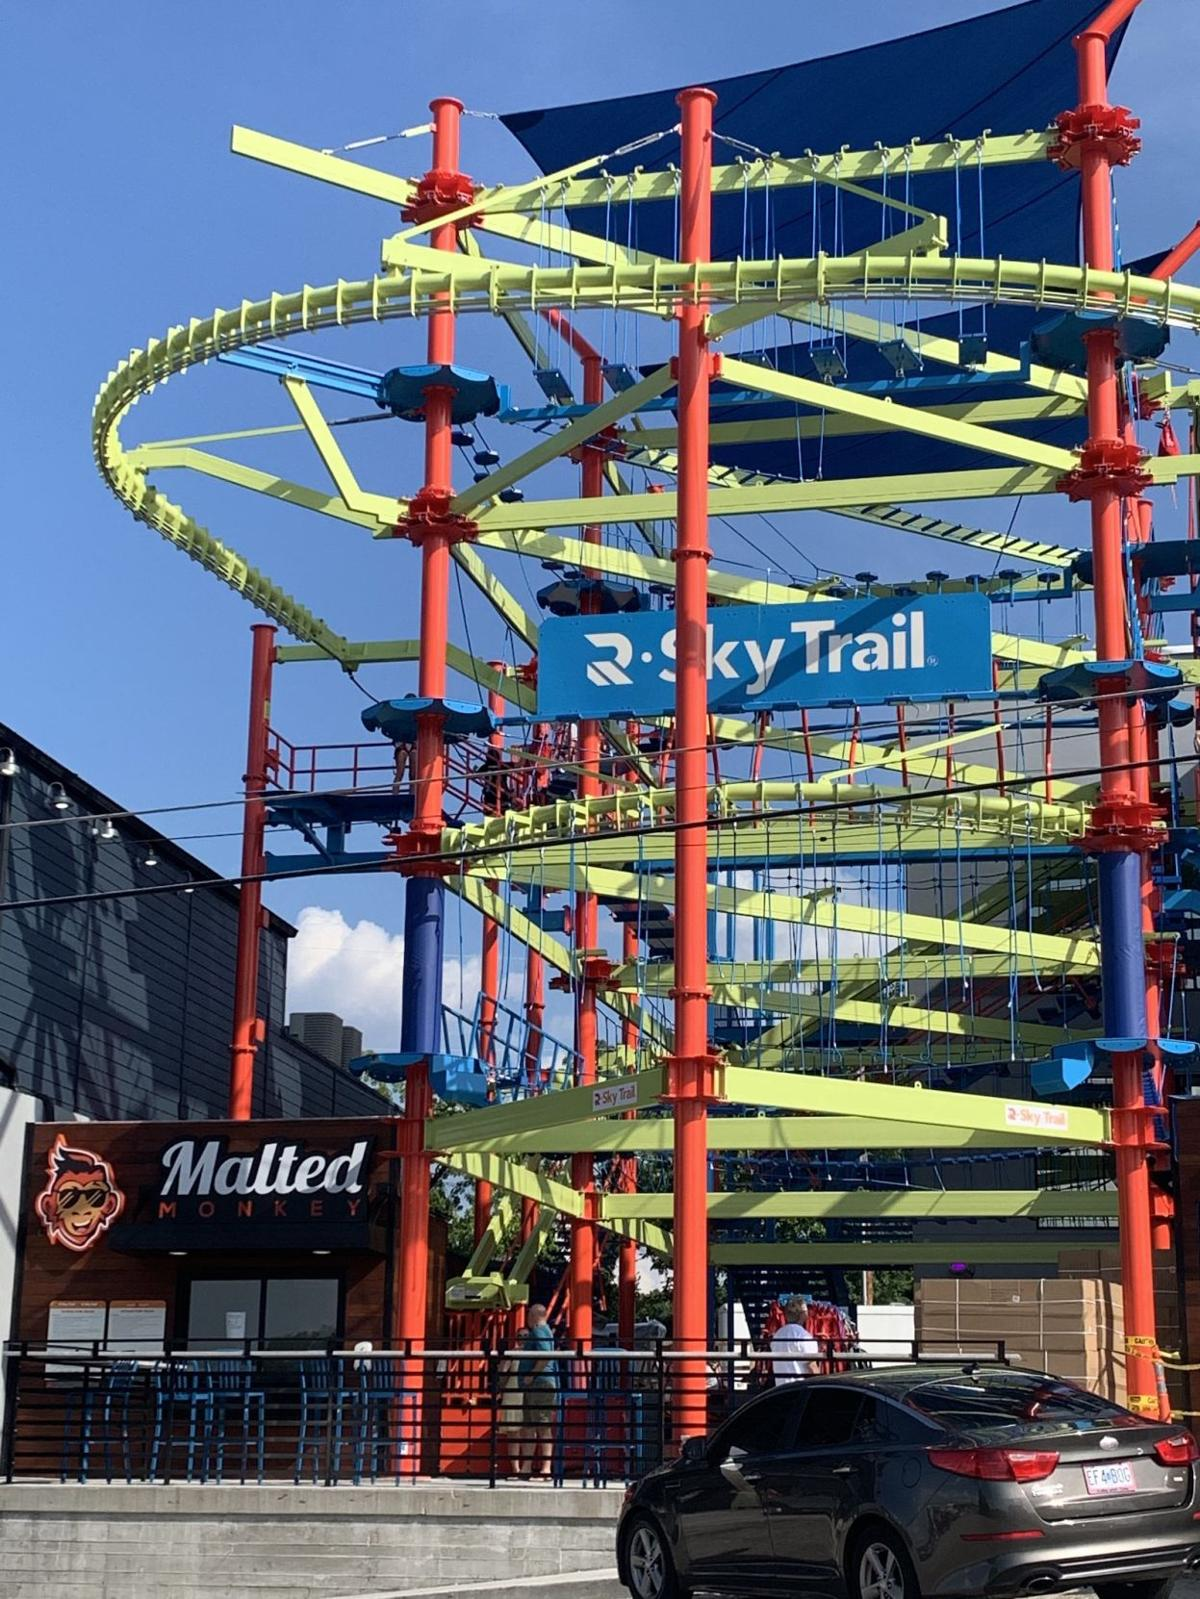 The Malted Monkey - Ropes Course